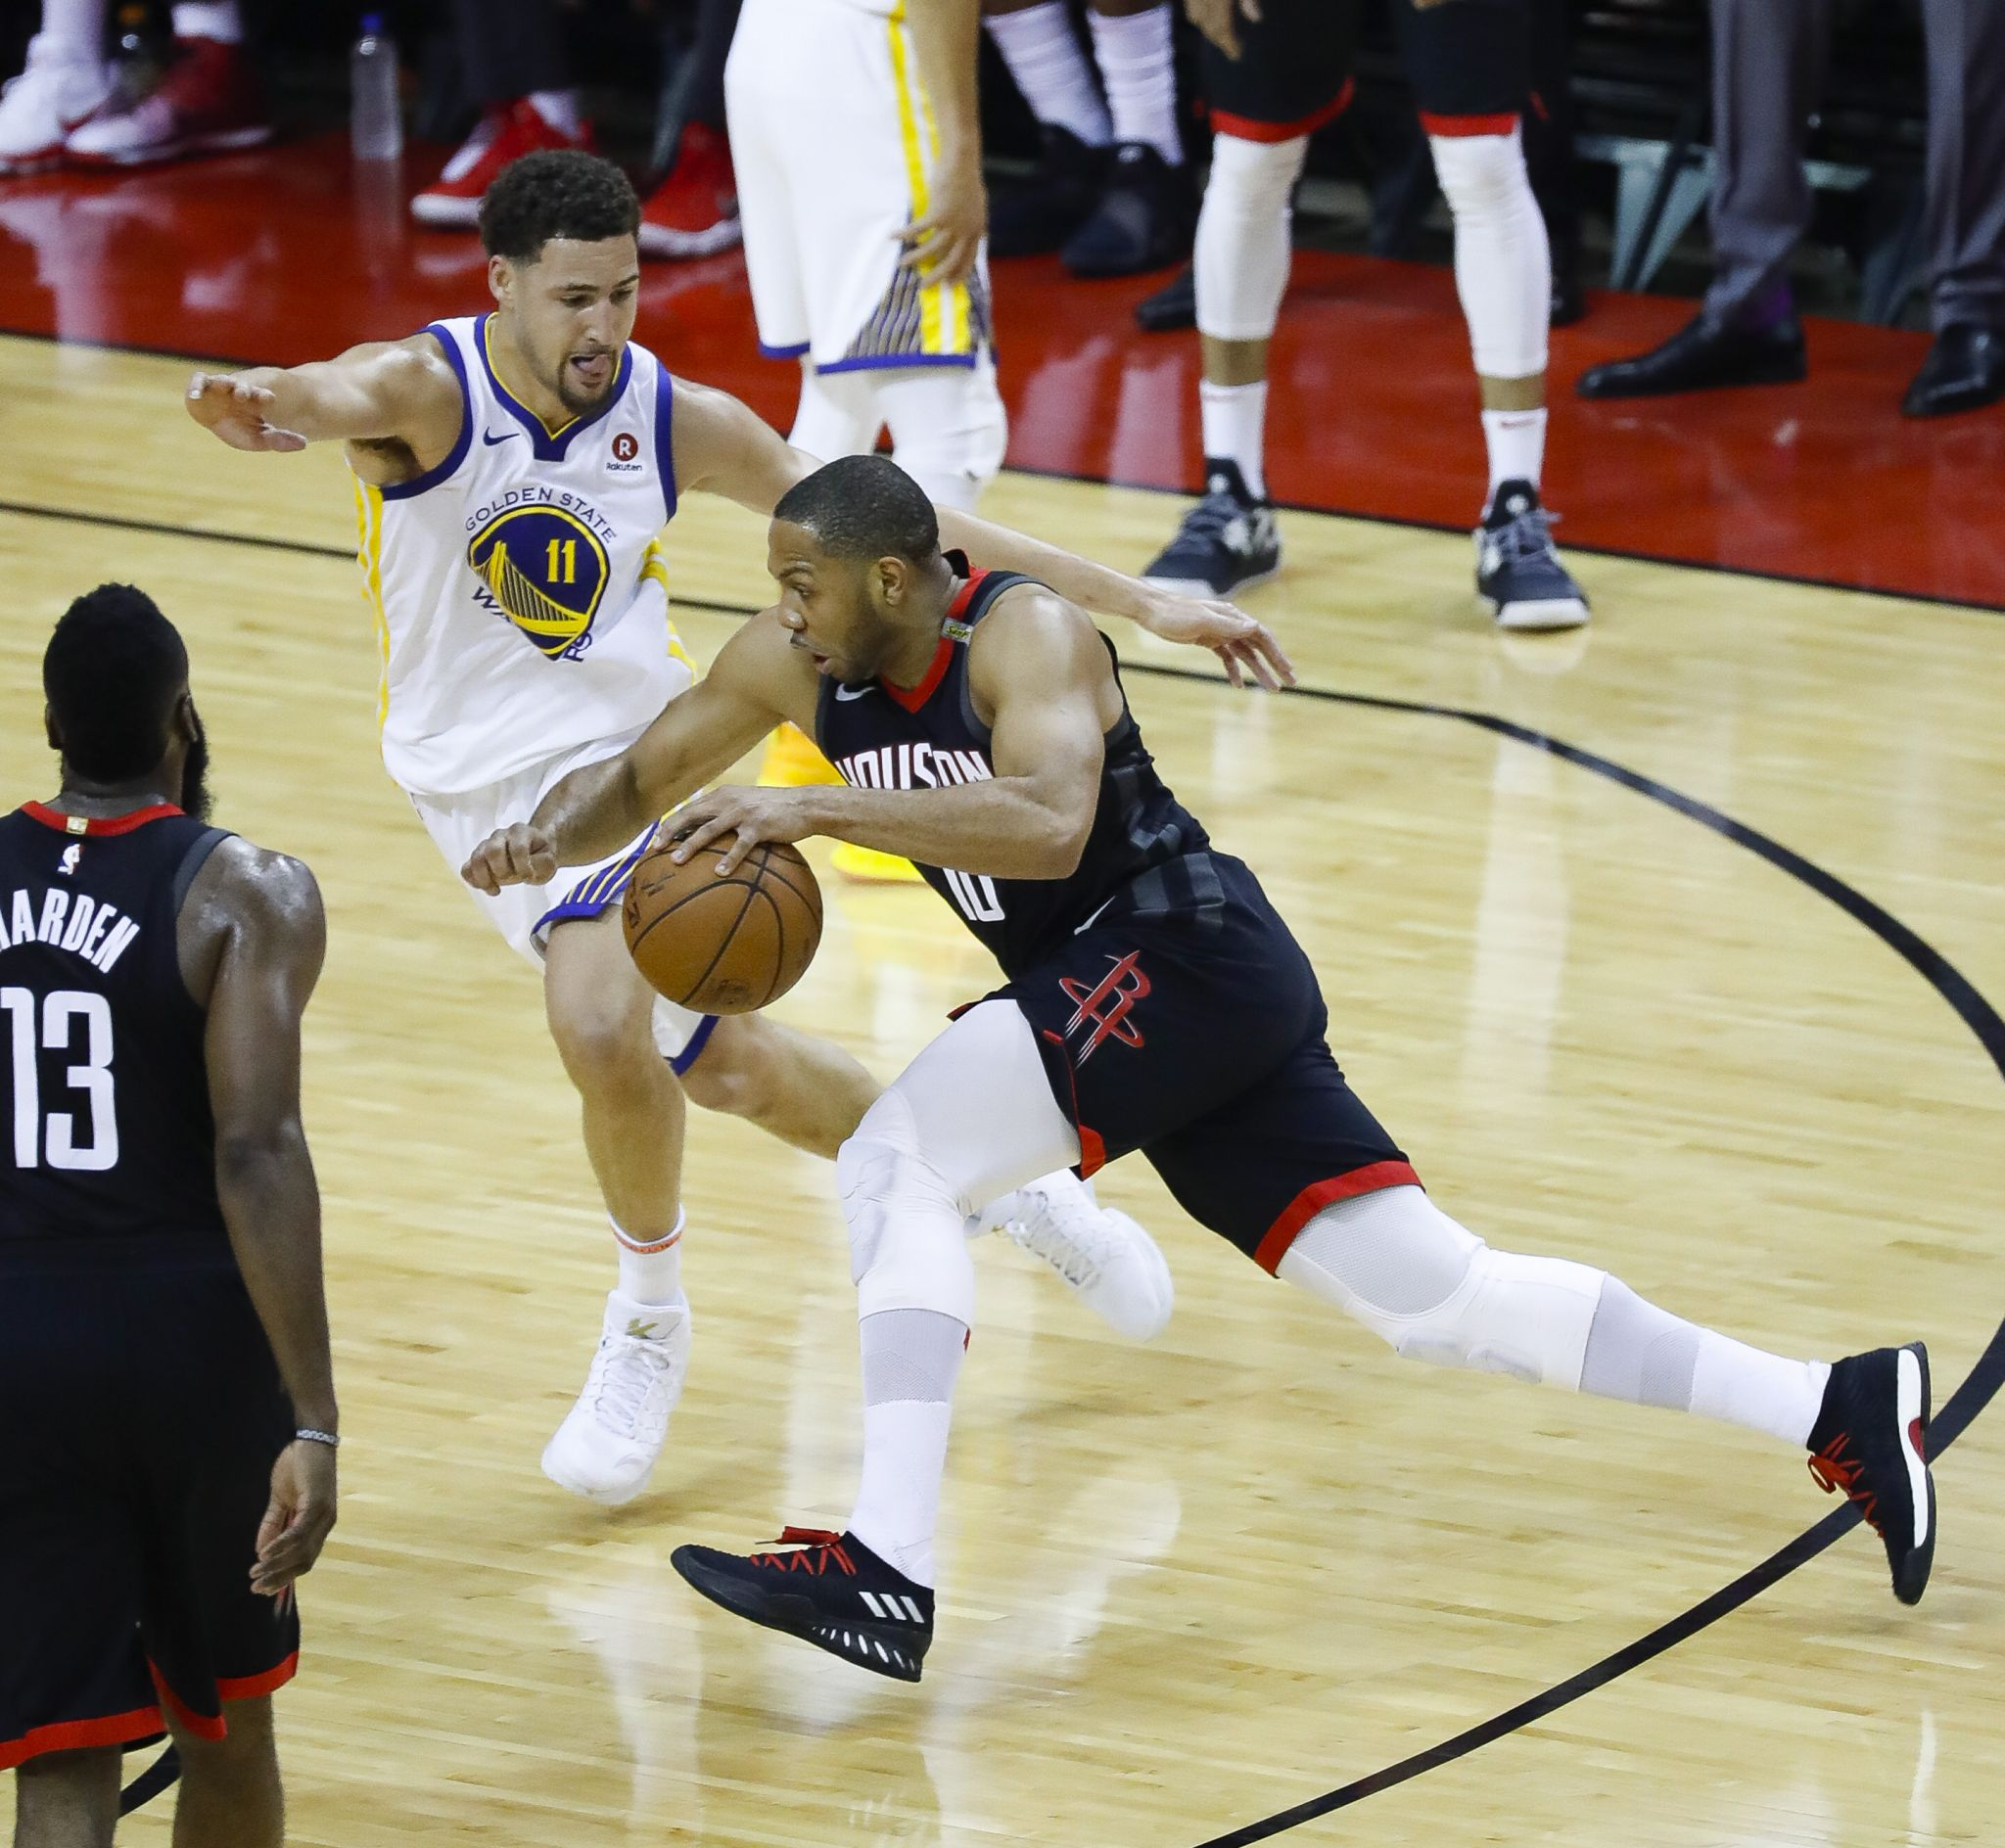 Rockets Vs Warriors Twitter Reaction: Rockets Vs. Warriors: Game 5 By The Numbers